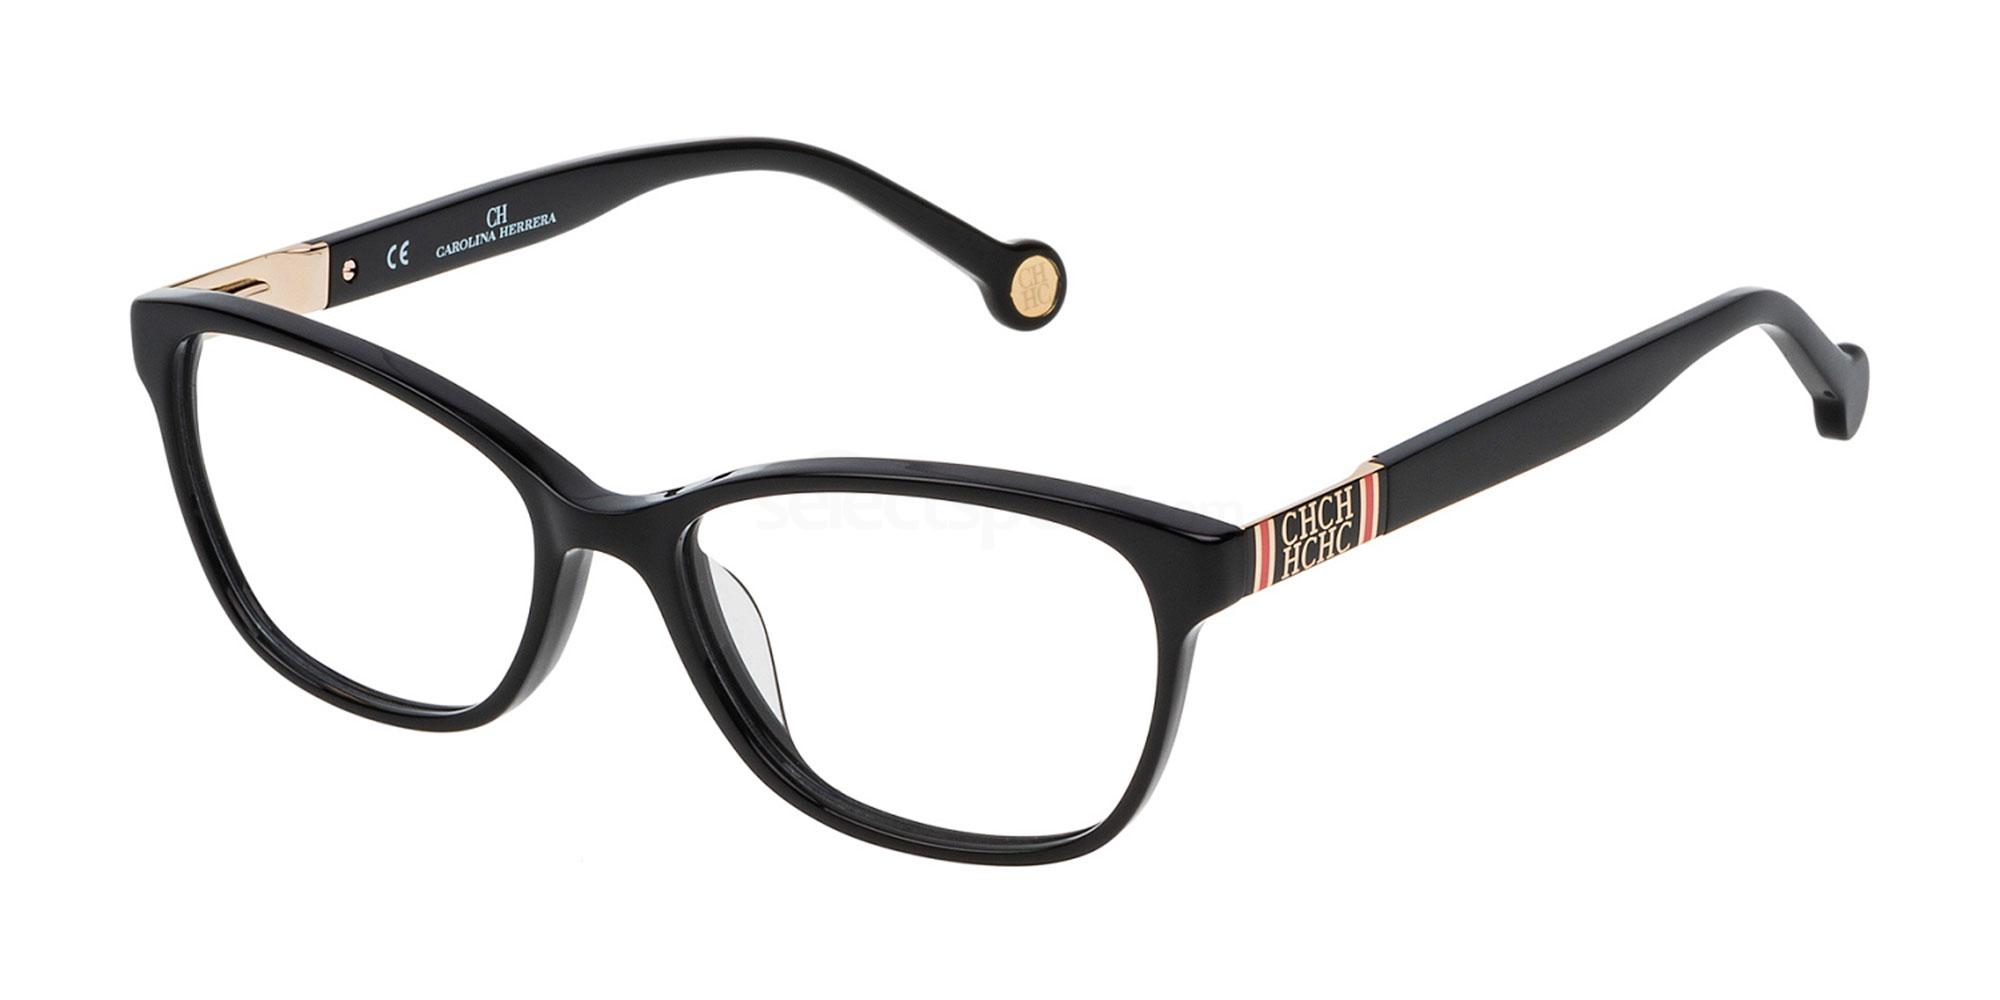 0700 VHE709 Glasses, CH Carolina Herrera